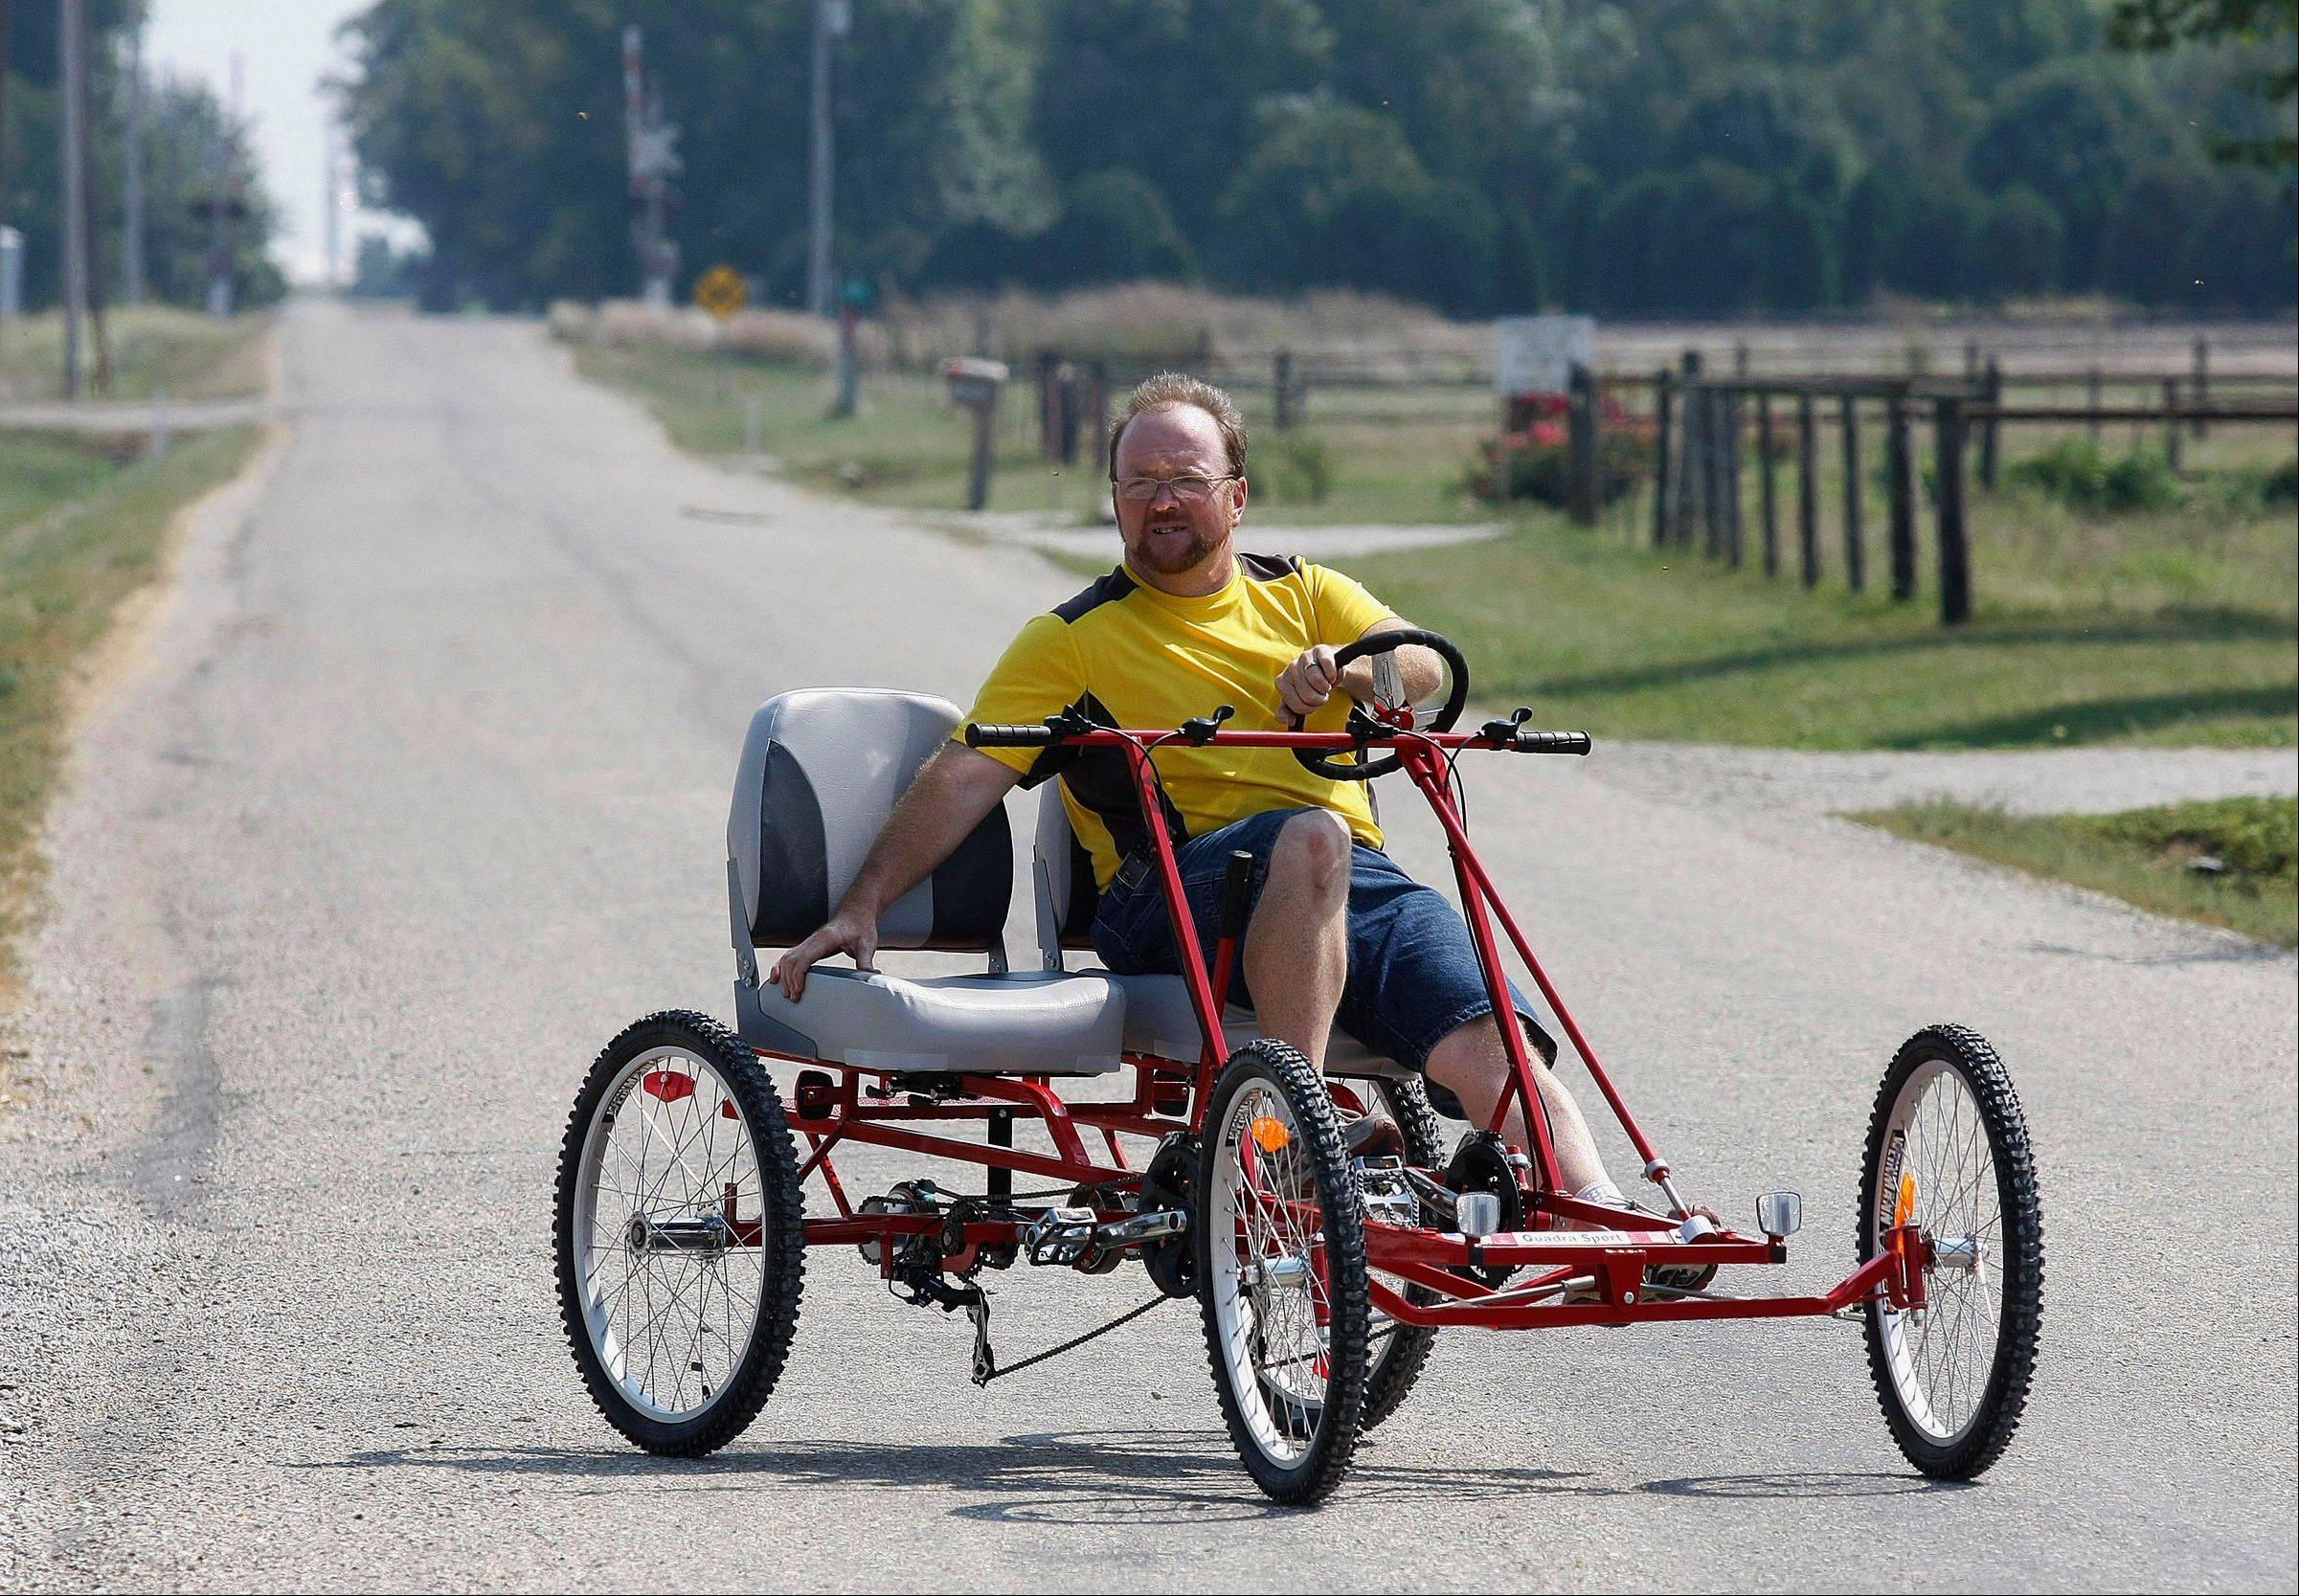 Sales representative Rich Flavin demonstrates a ride in the Quadra Sport Quadracycle, a unique four-wheel bicycle manufactured in rural Tuscola.